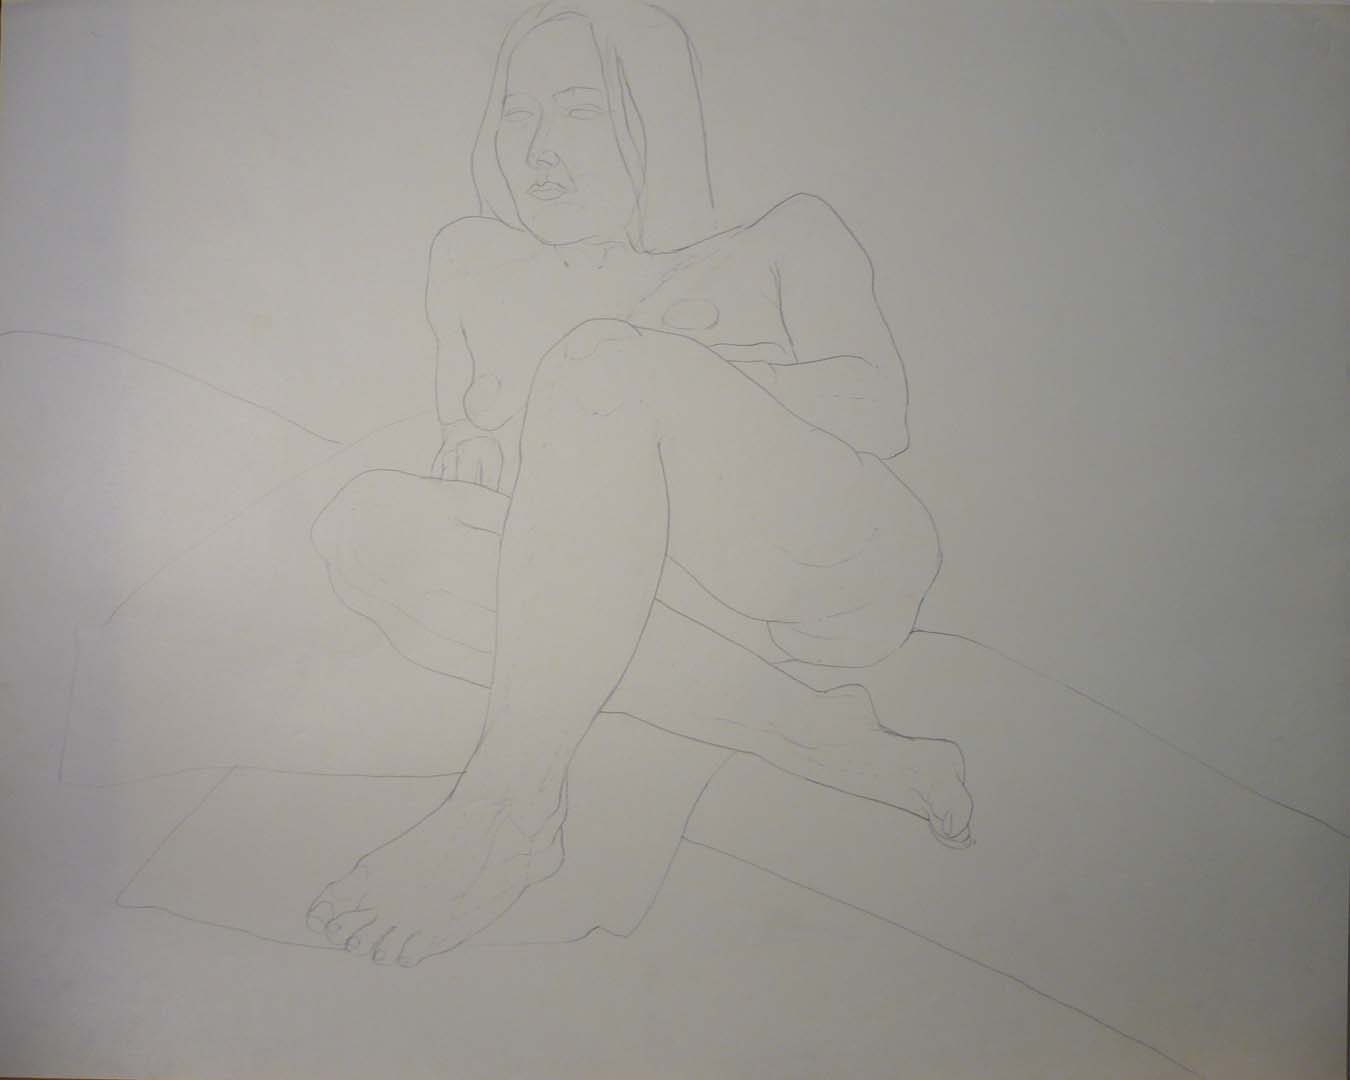 Female Nude with Crossed Legs Pencil 22.5 x 28.5